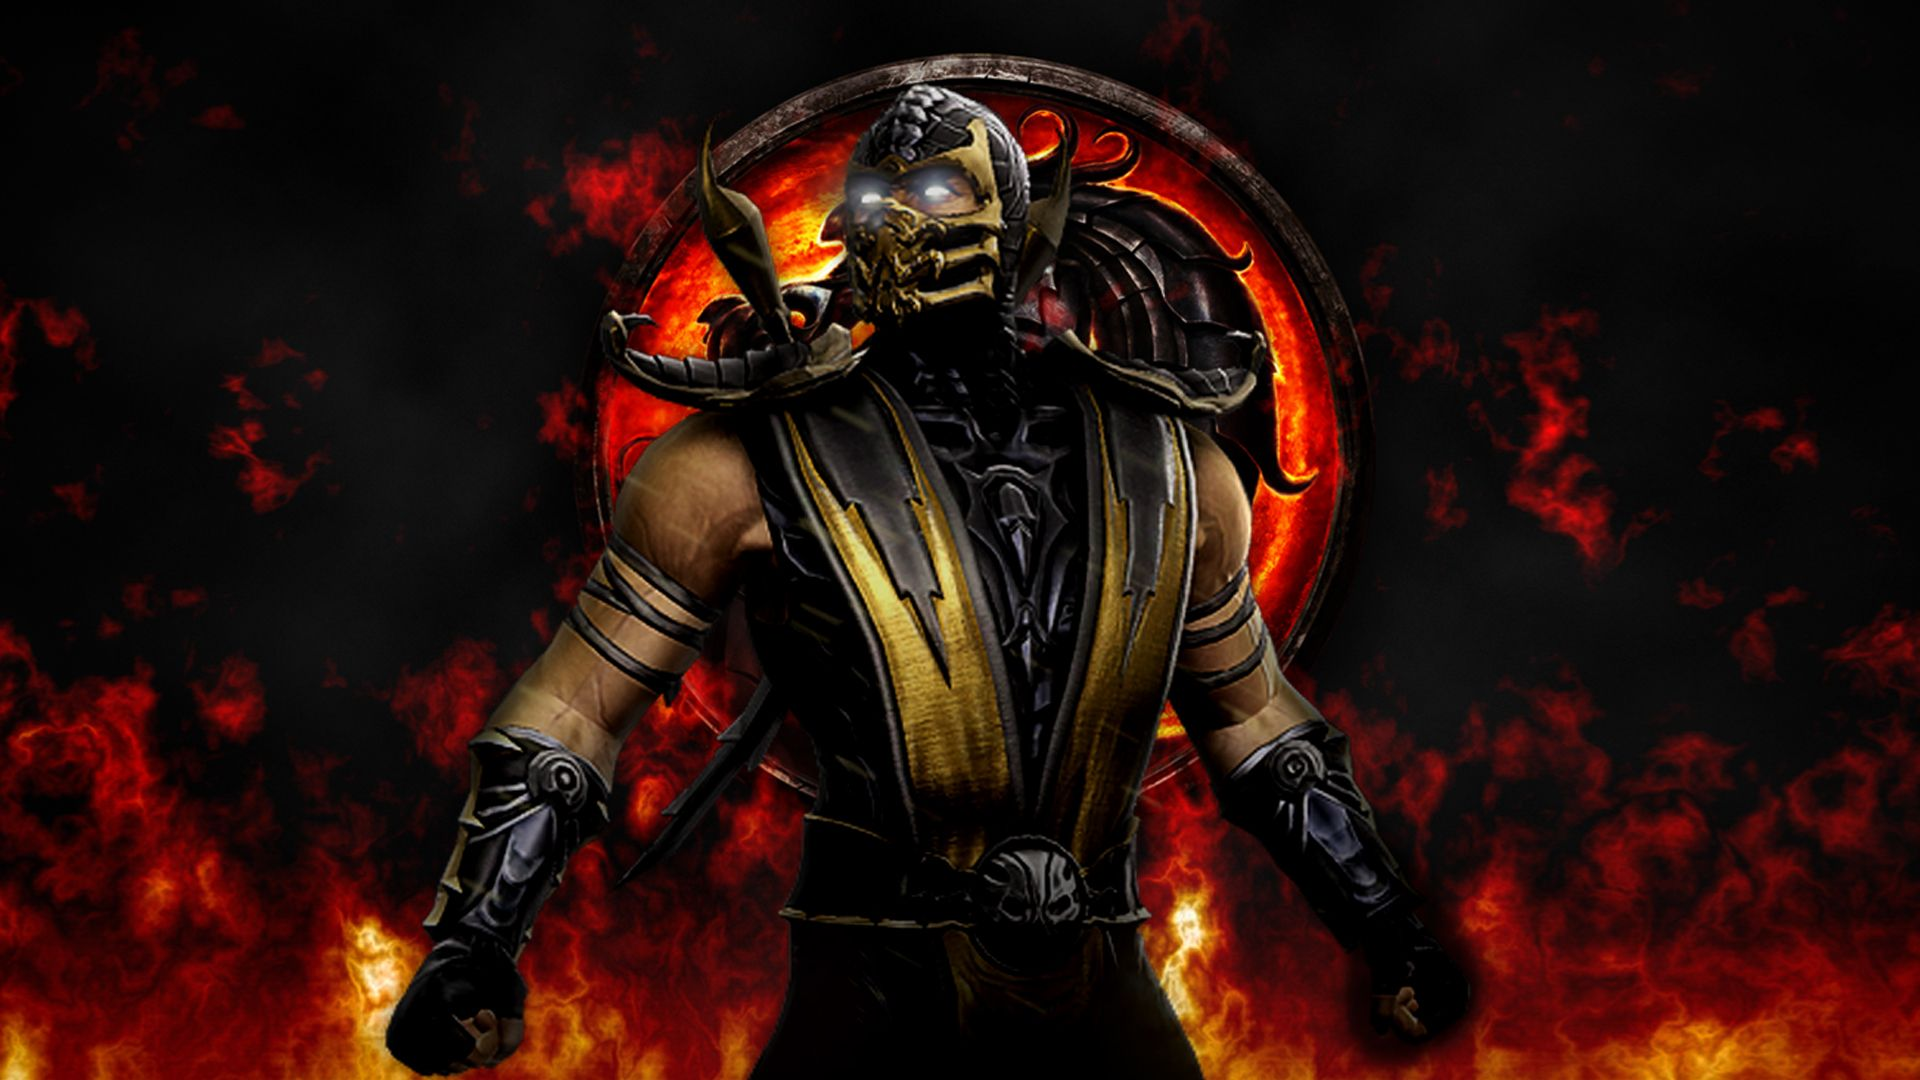 Mortal Kombat Scorpion Wallpaper Posted By Christopher Thompson